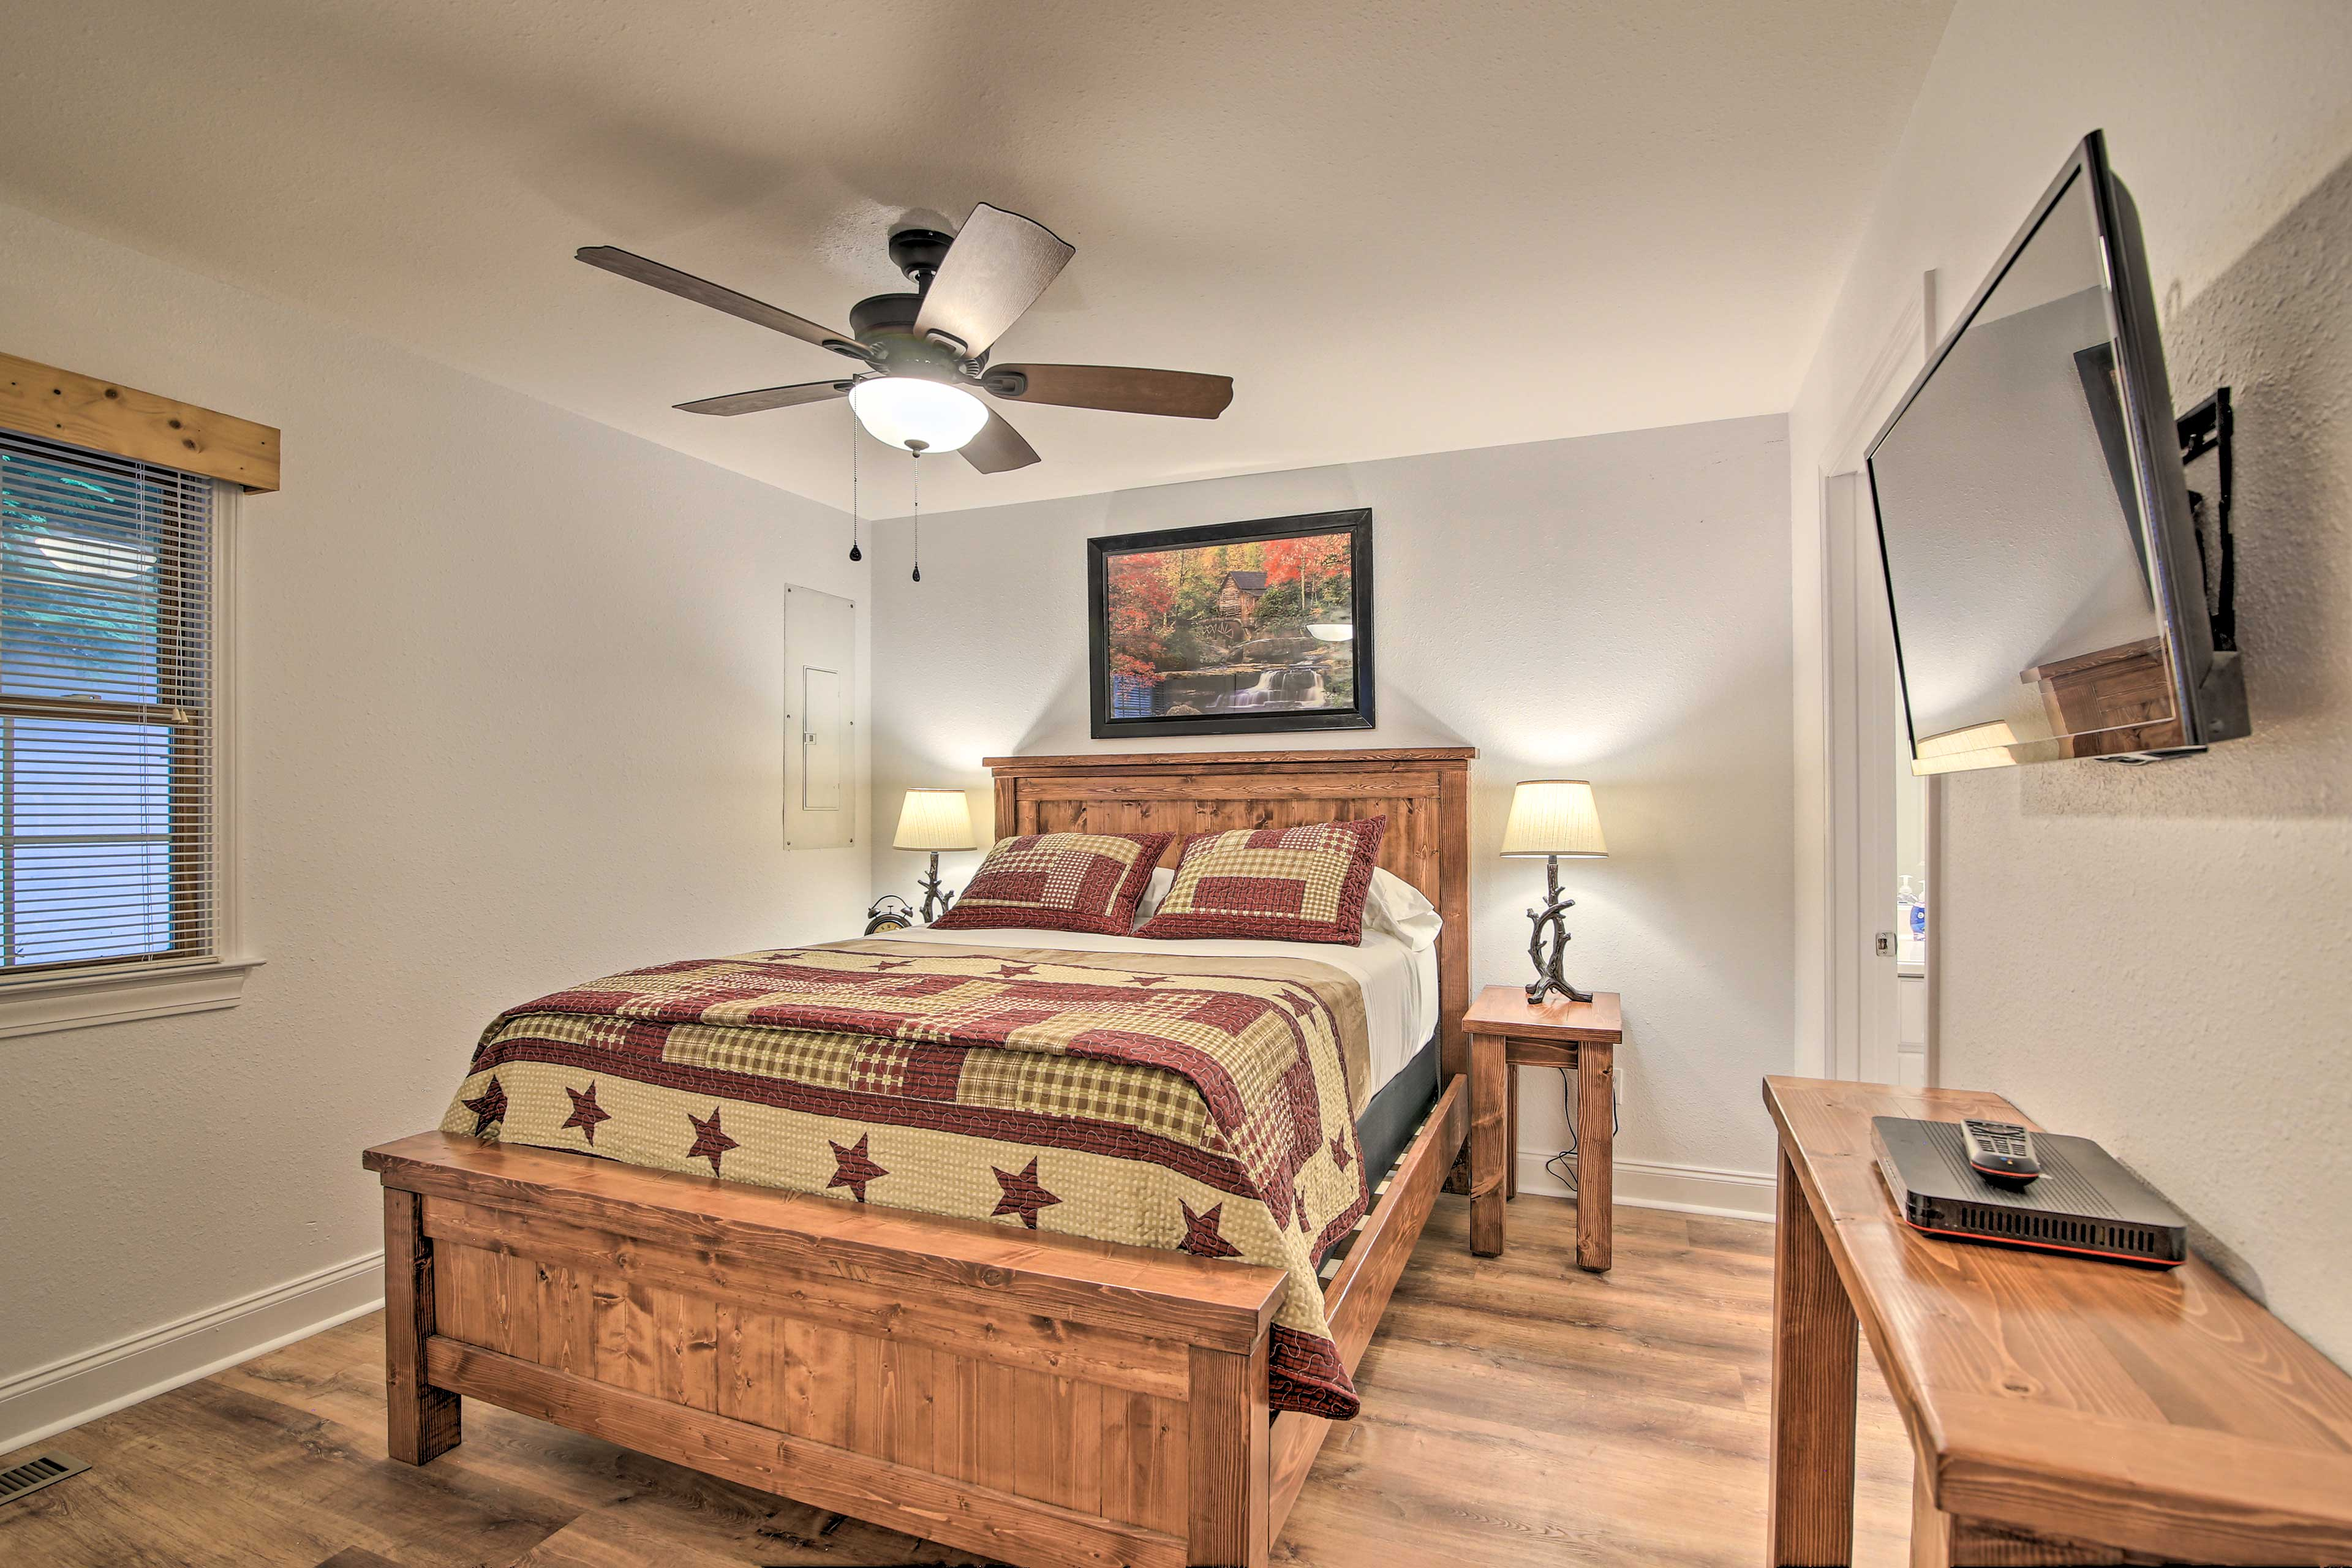 The master bedroom is calling your name.